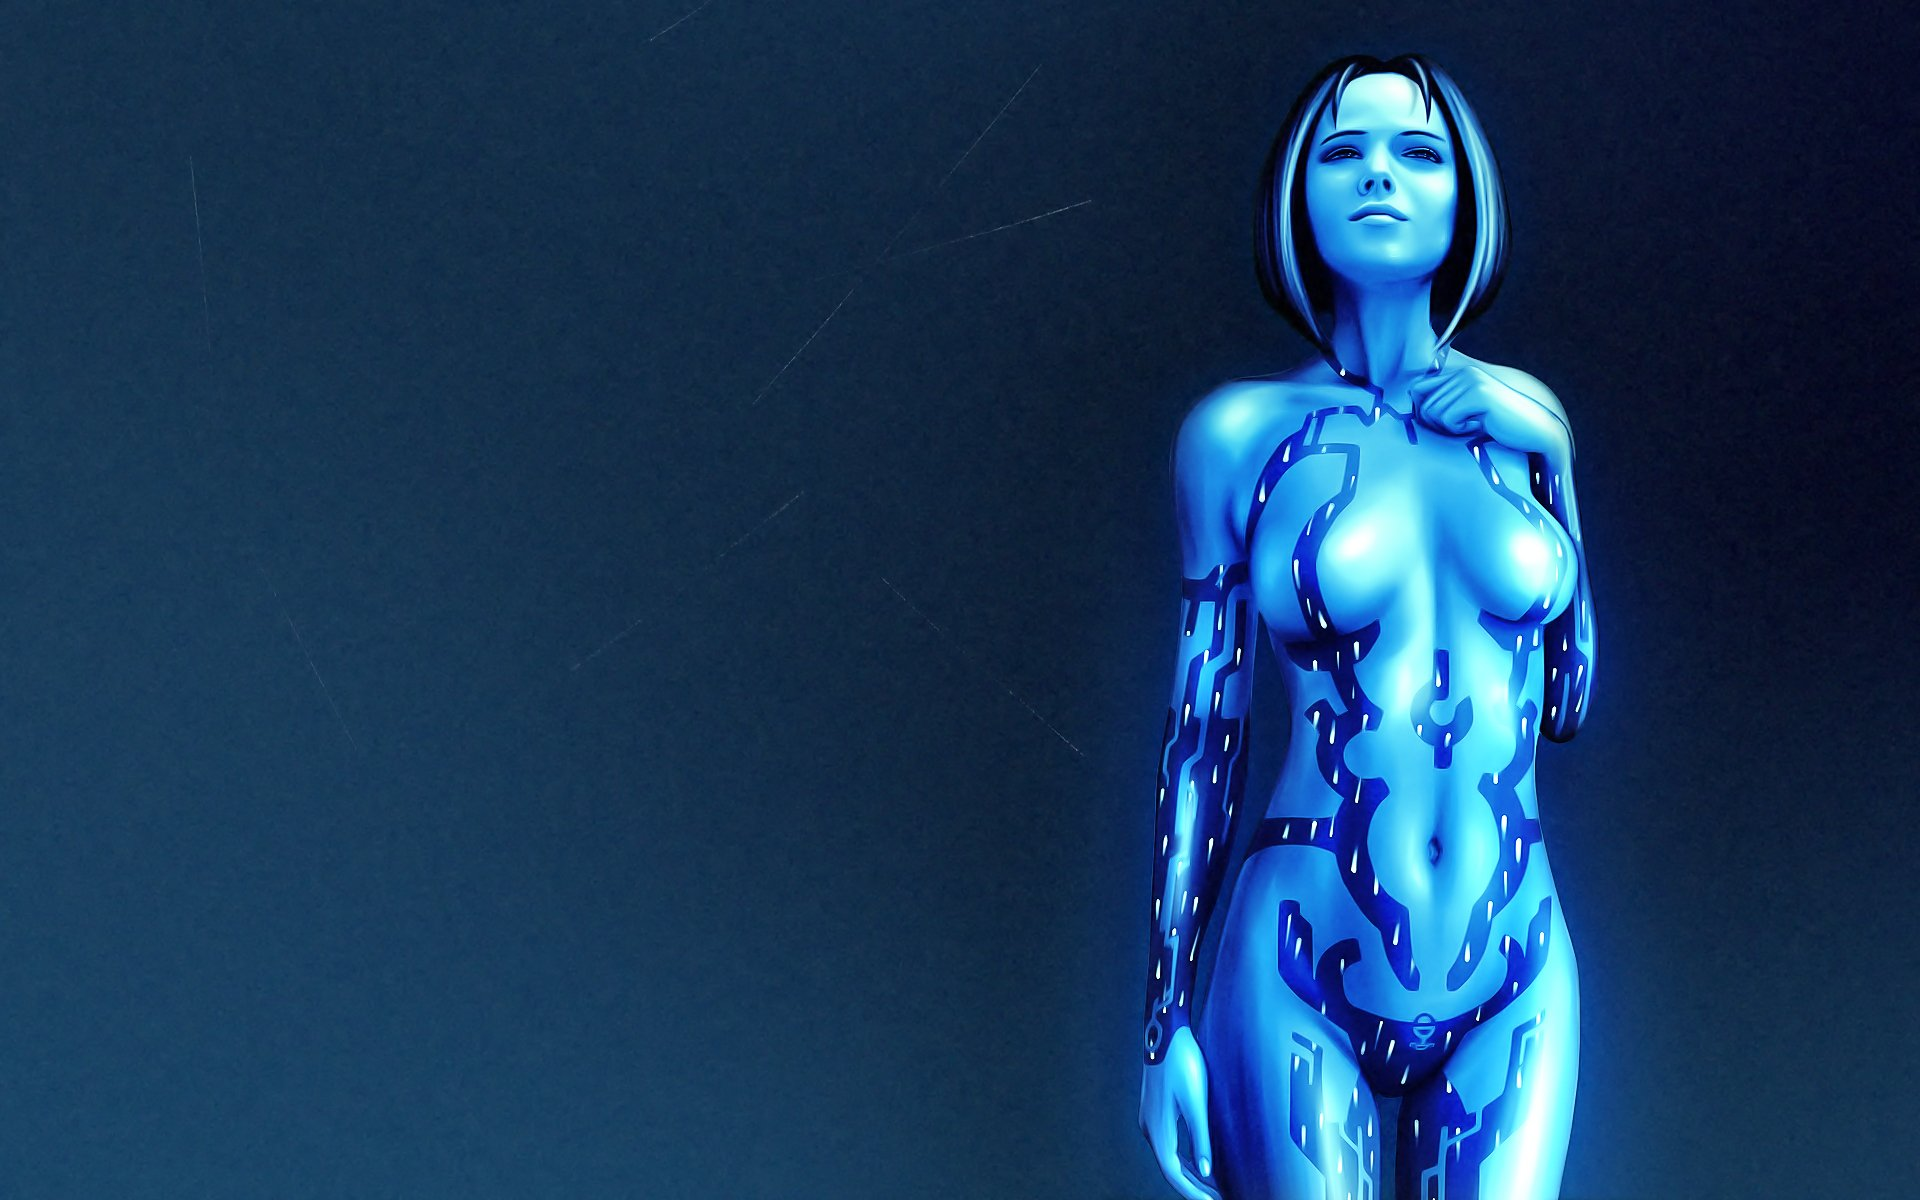 Video Game - Halo  Cortana (Halo) Hologram Wallpaper